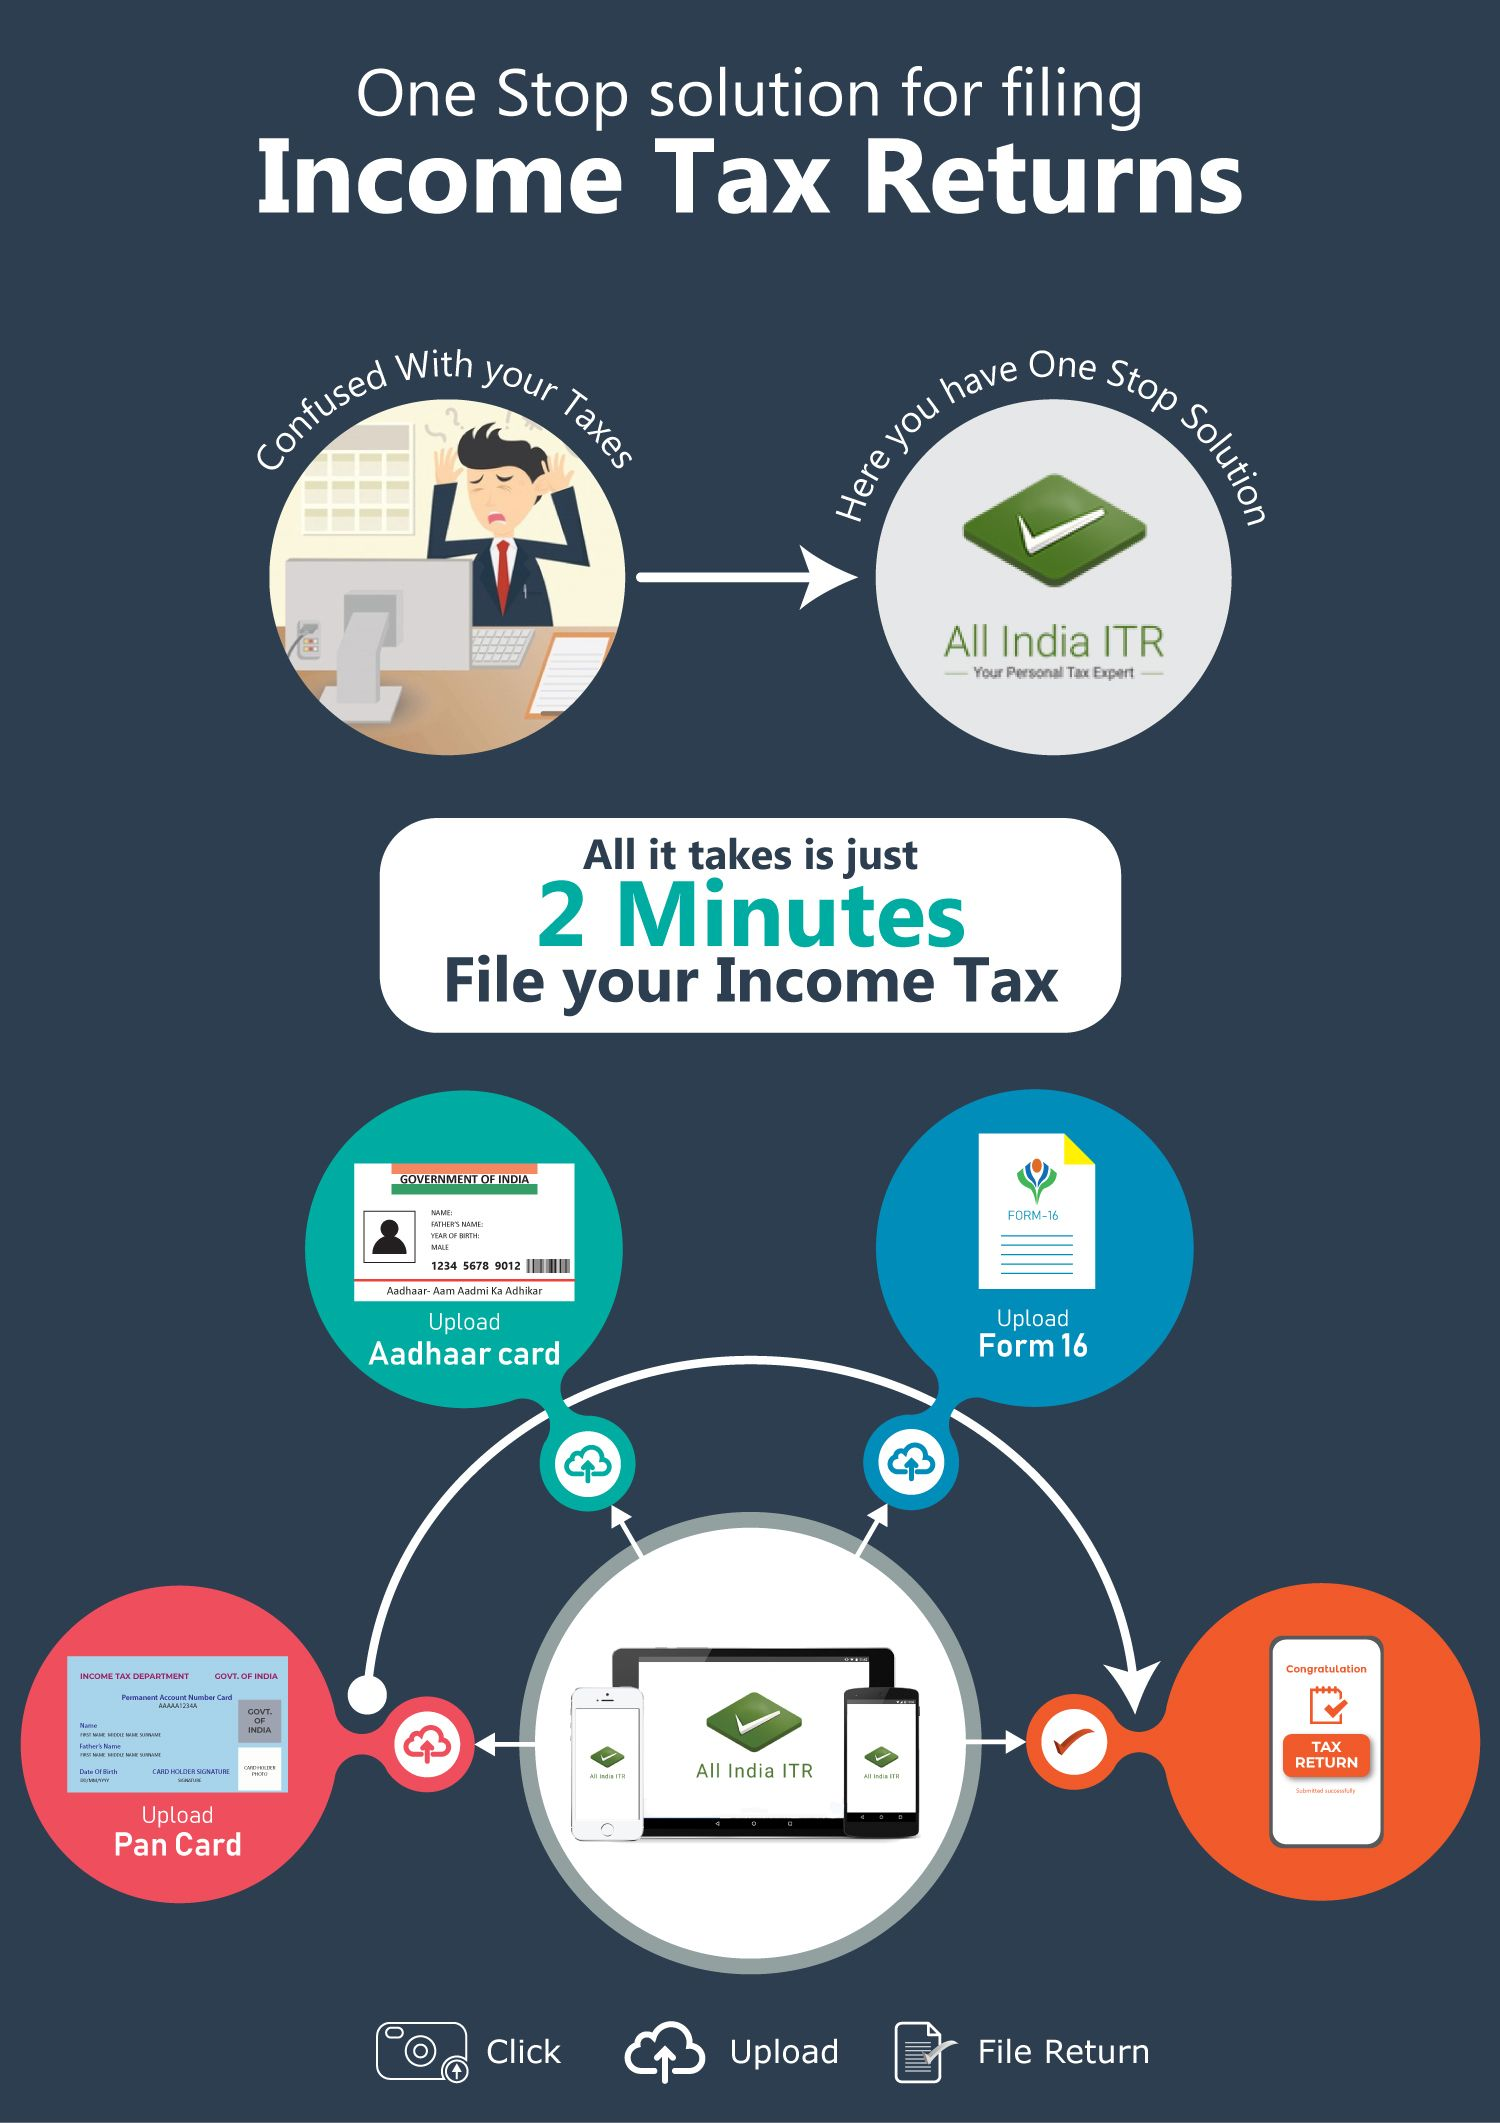 E File Itr Itr Amp Tax Filing Online Very Simpale With Allindiaitr How To Filing Itr Income Tax Return 31st Mar Income Tax Return Tax Return Income Tax